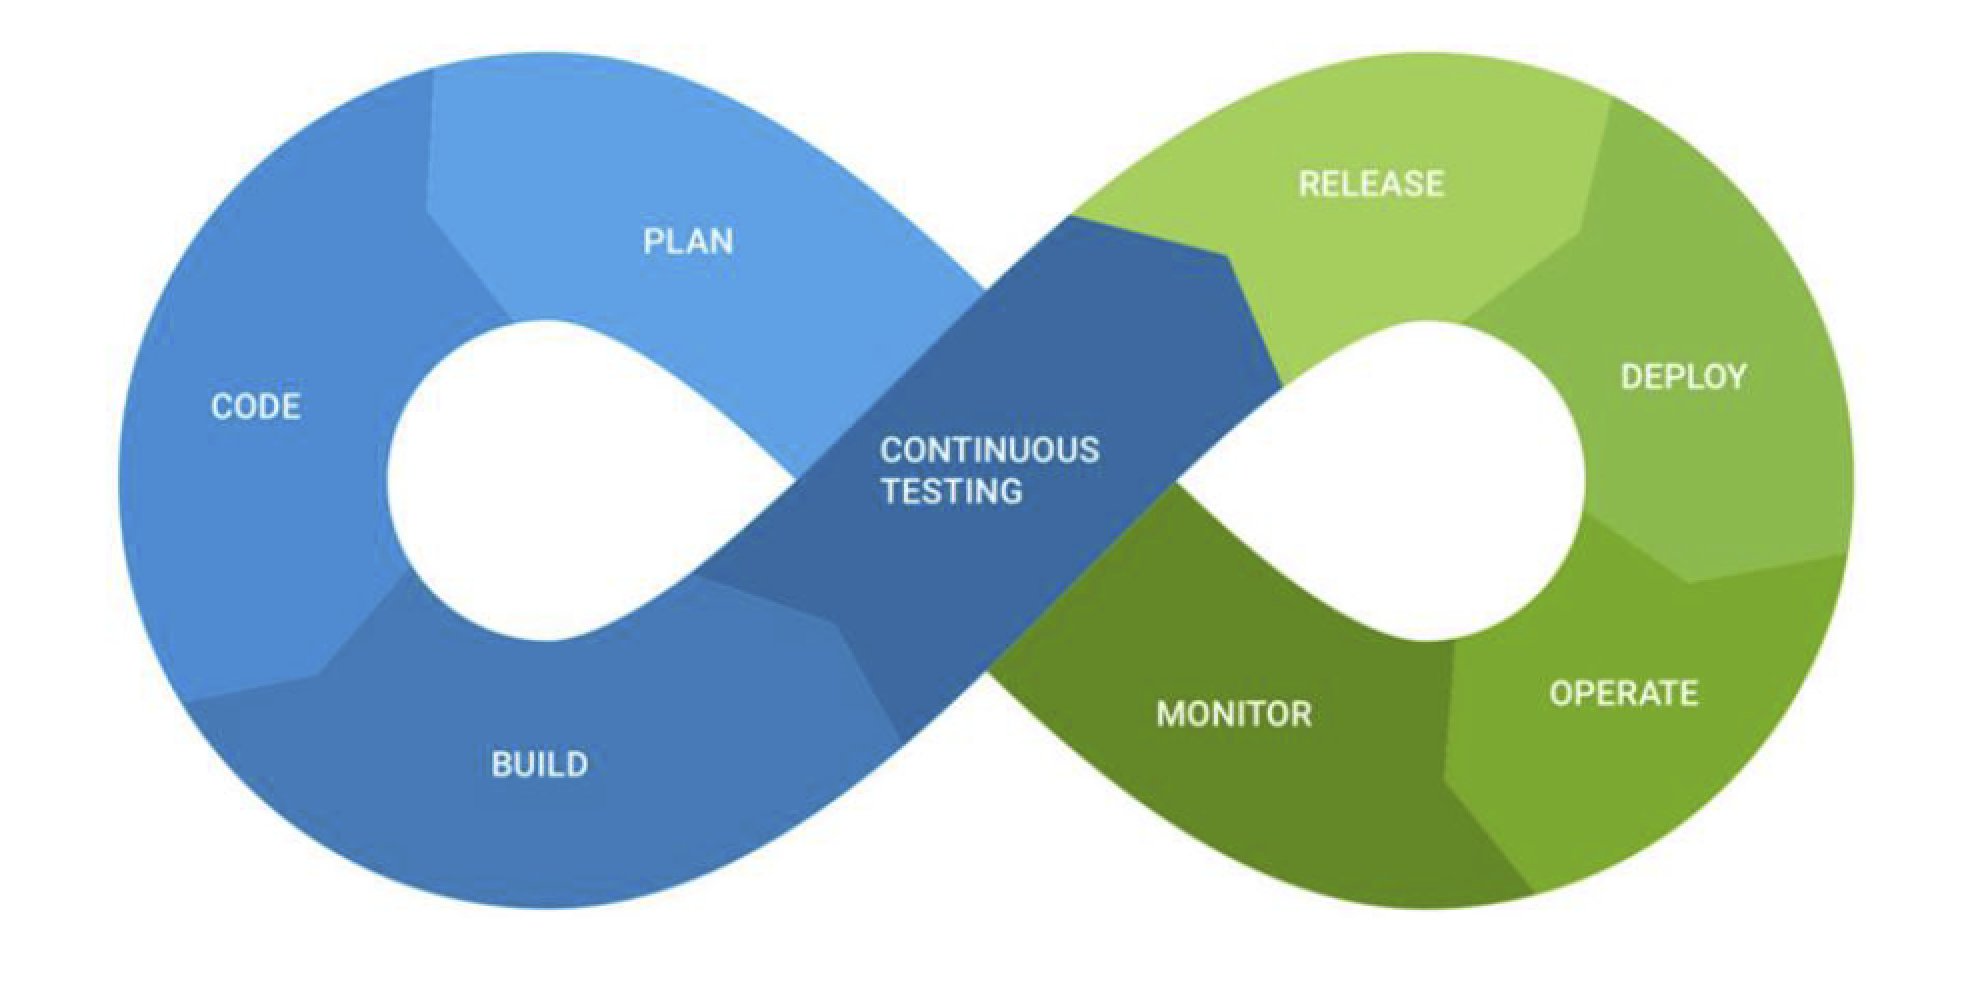 The Core of Continuous Testing